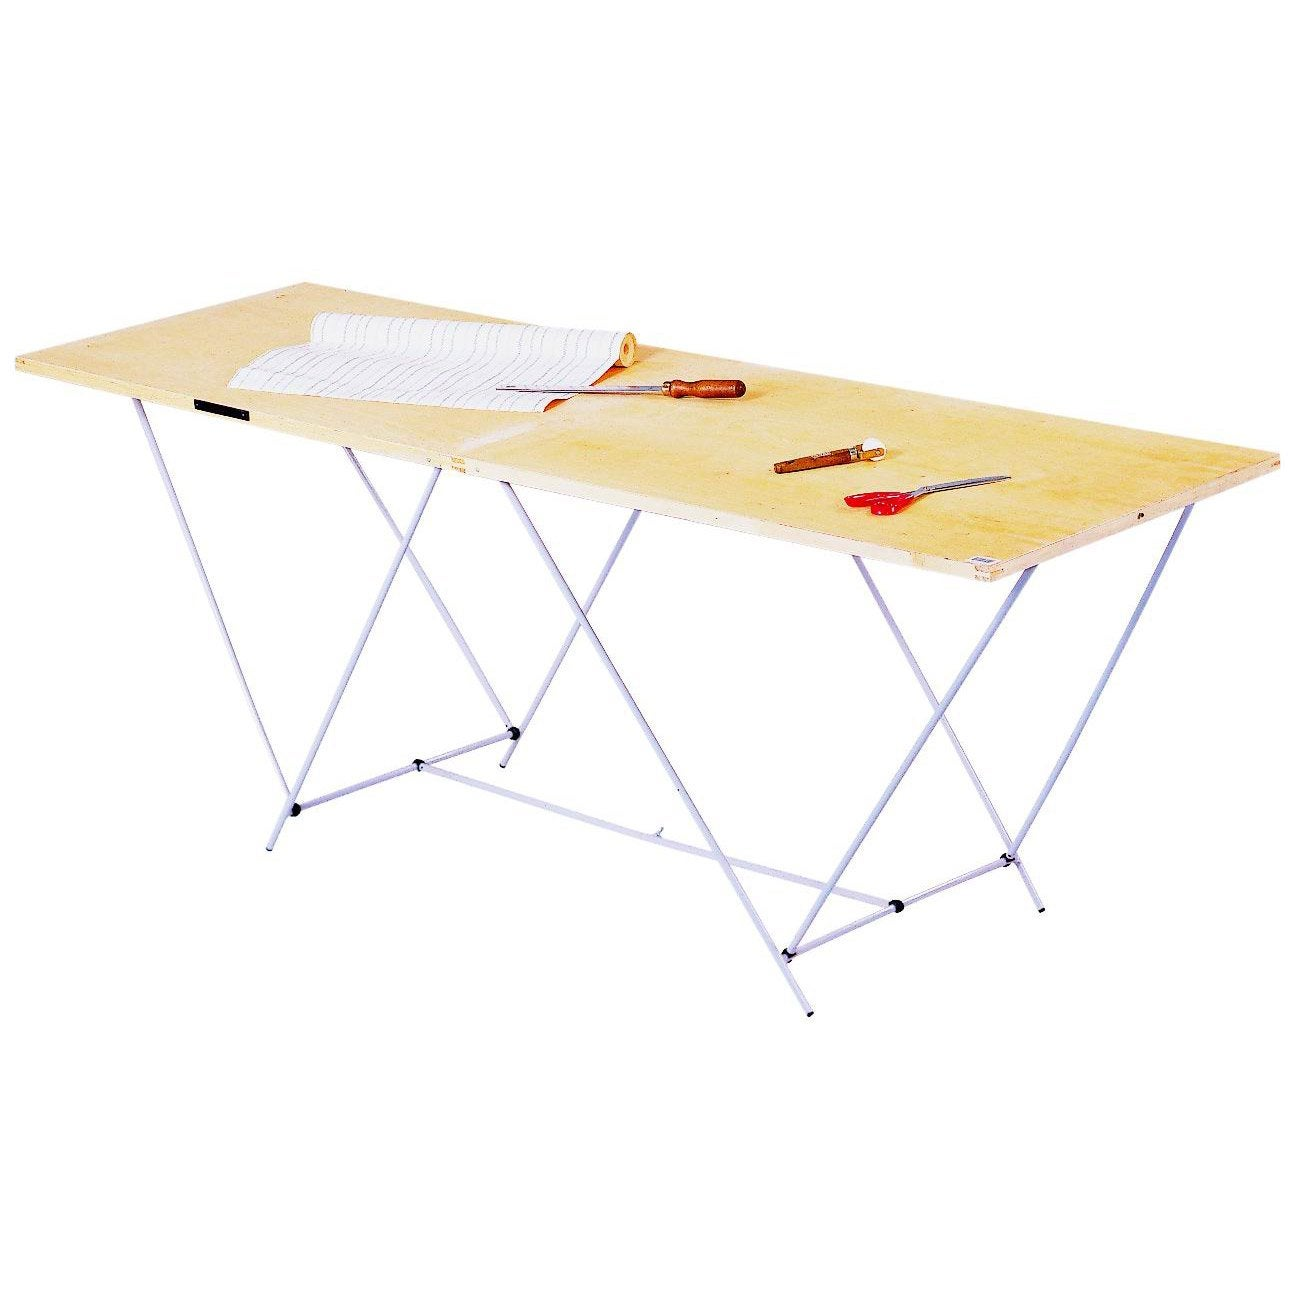 Table tapisser pliante ocai 60 cm x 2 m leroy merlin for Table de cuisine pliante leroy merlin